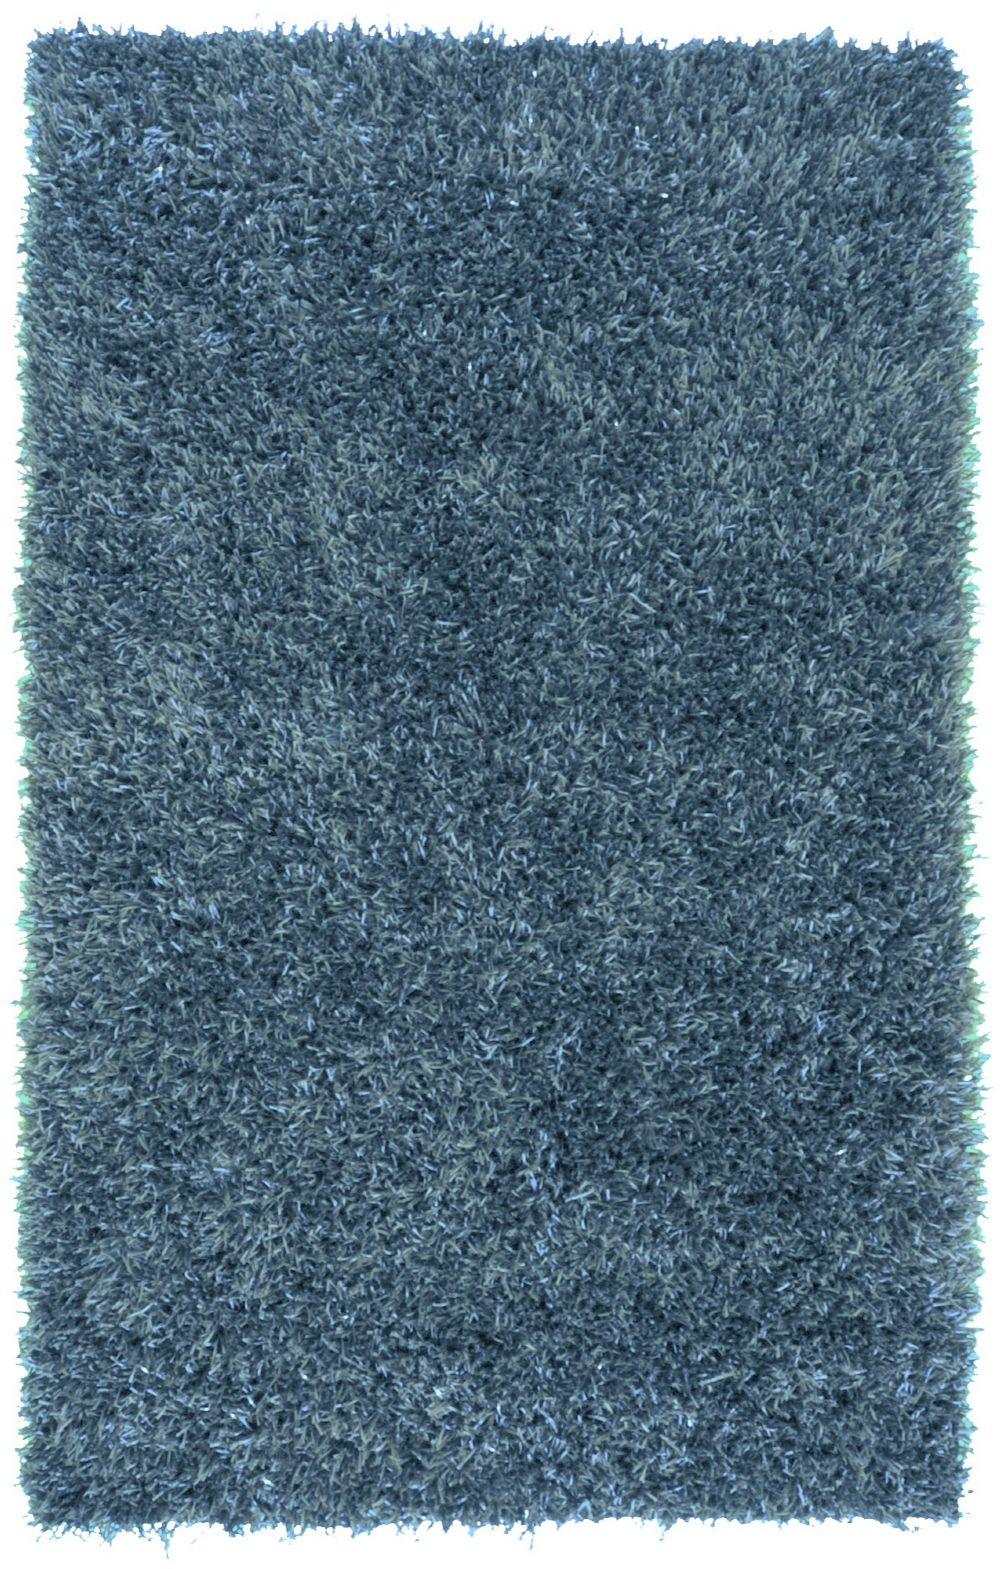 surya shimmer shag area rug collection